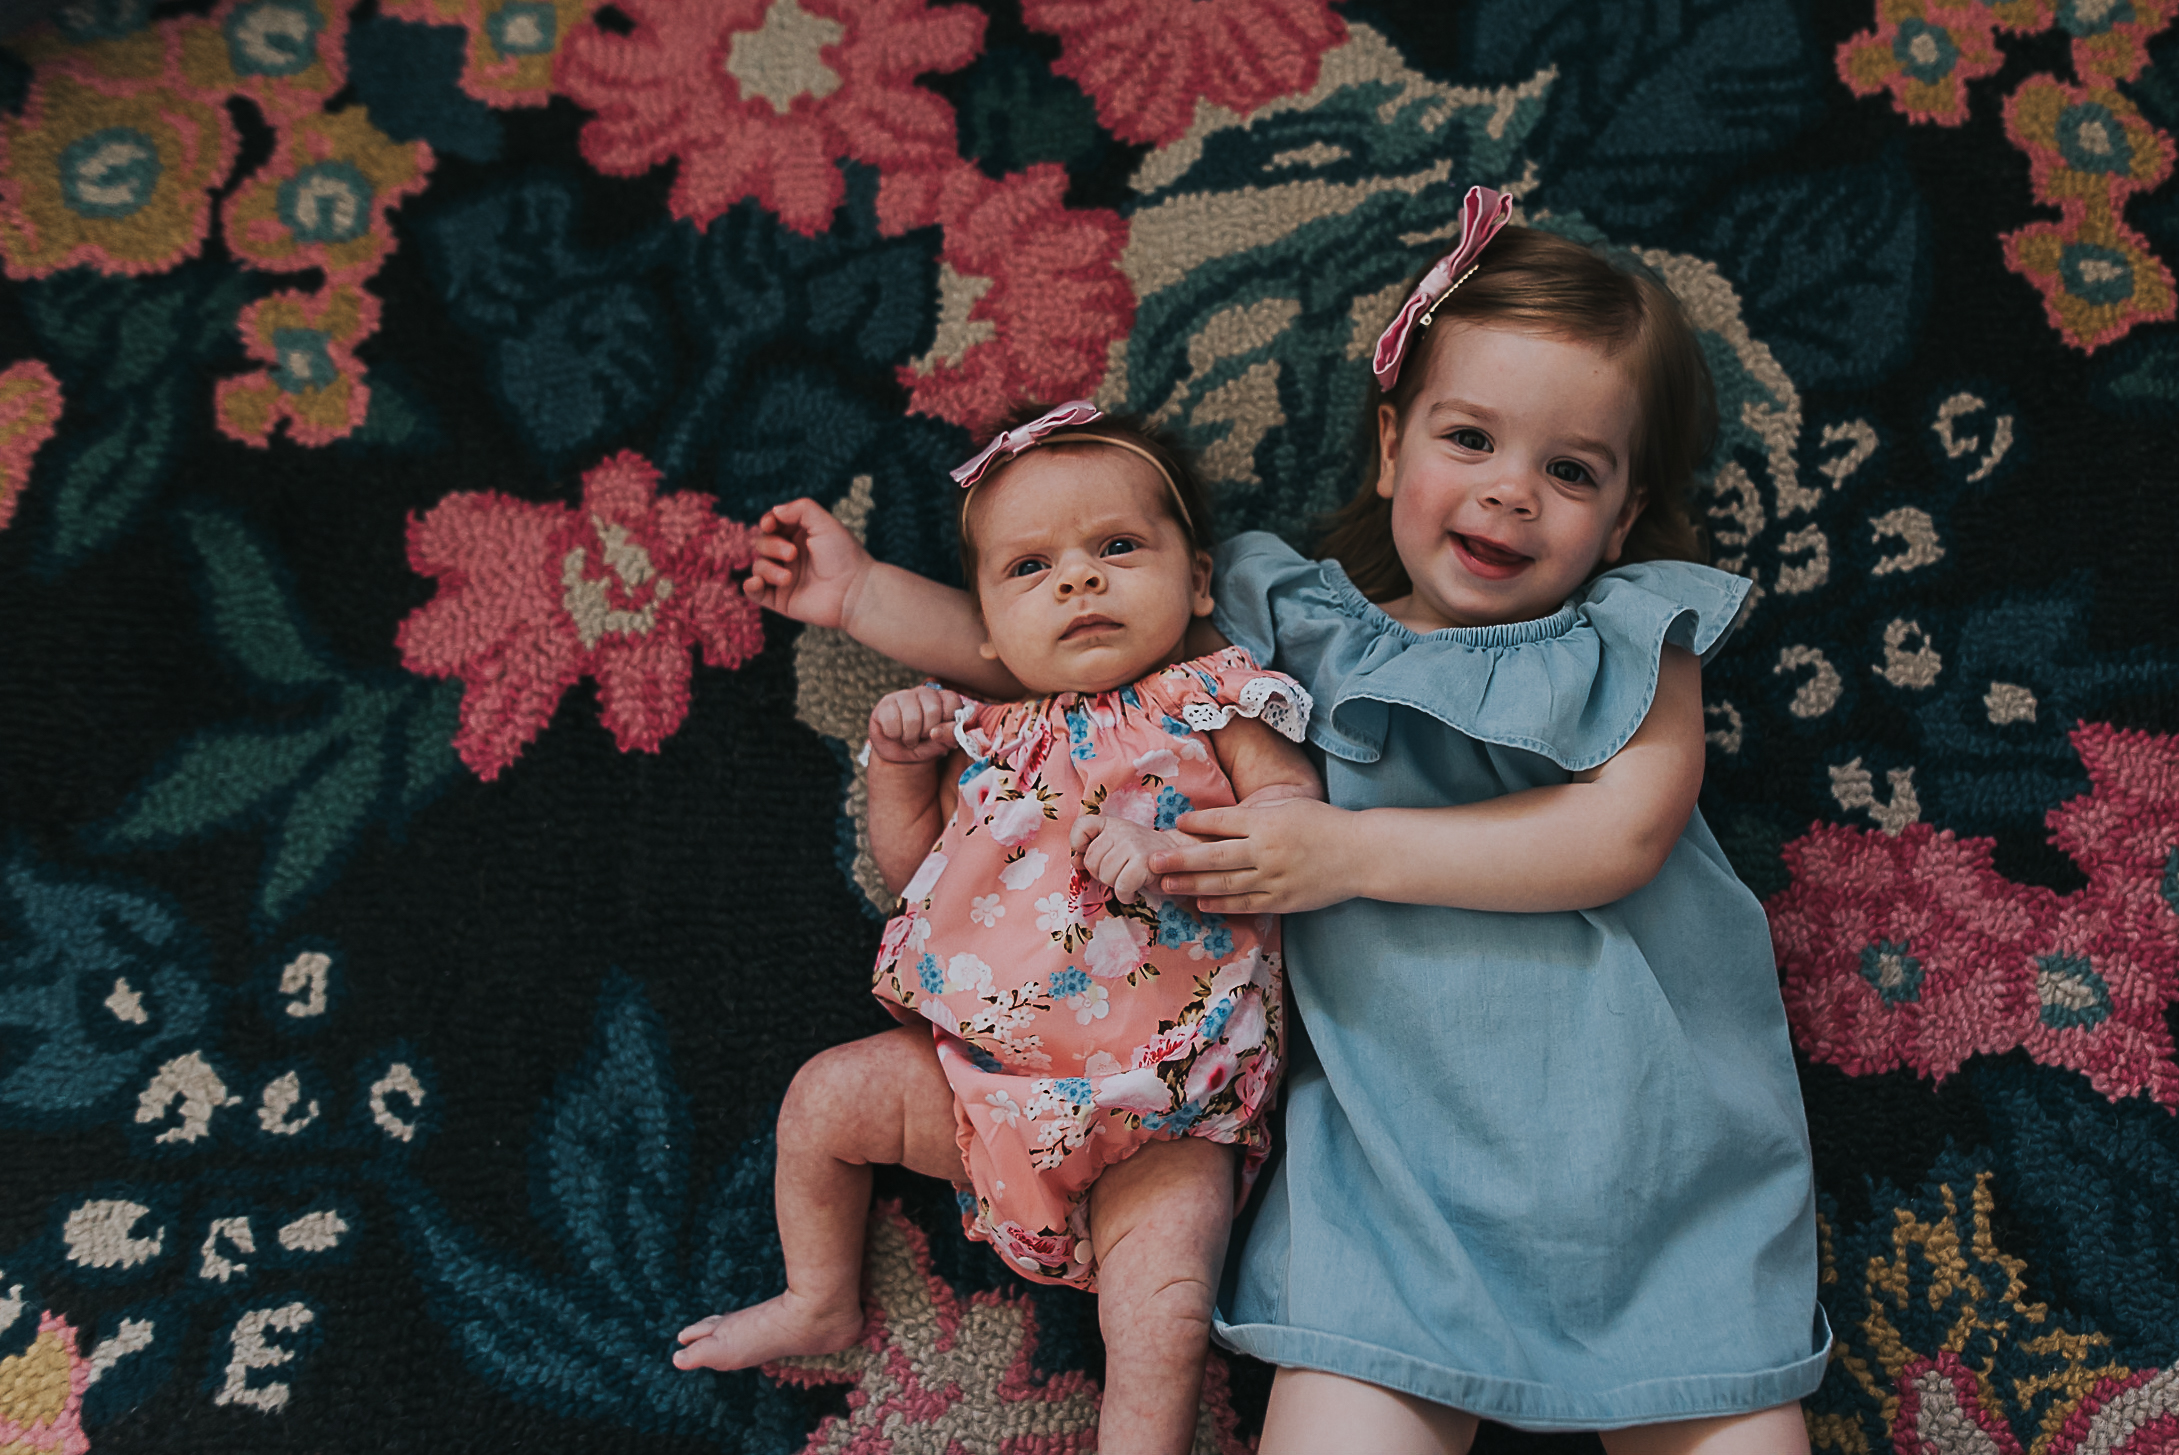 sisters together